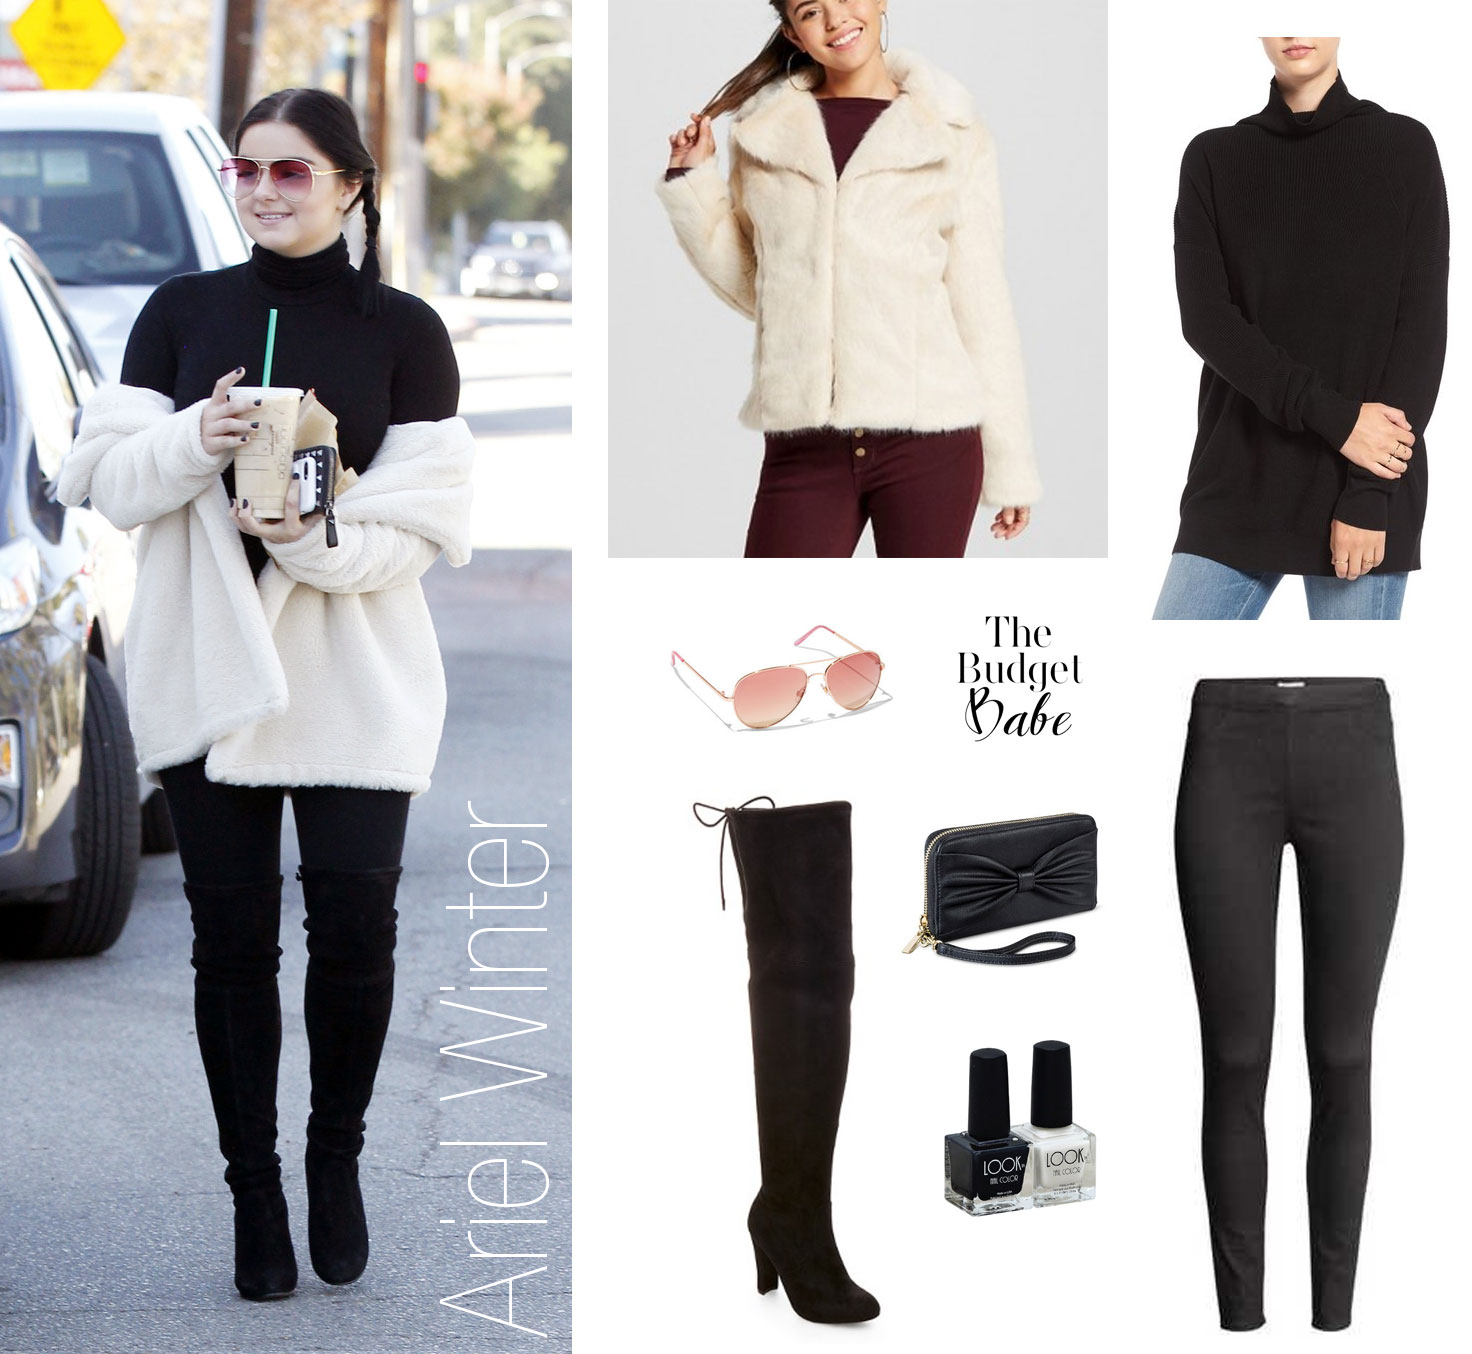 Ariel Winter wears an all black ensemble with a faux fur coat in ivory and over the knee boots.